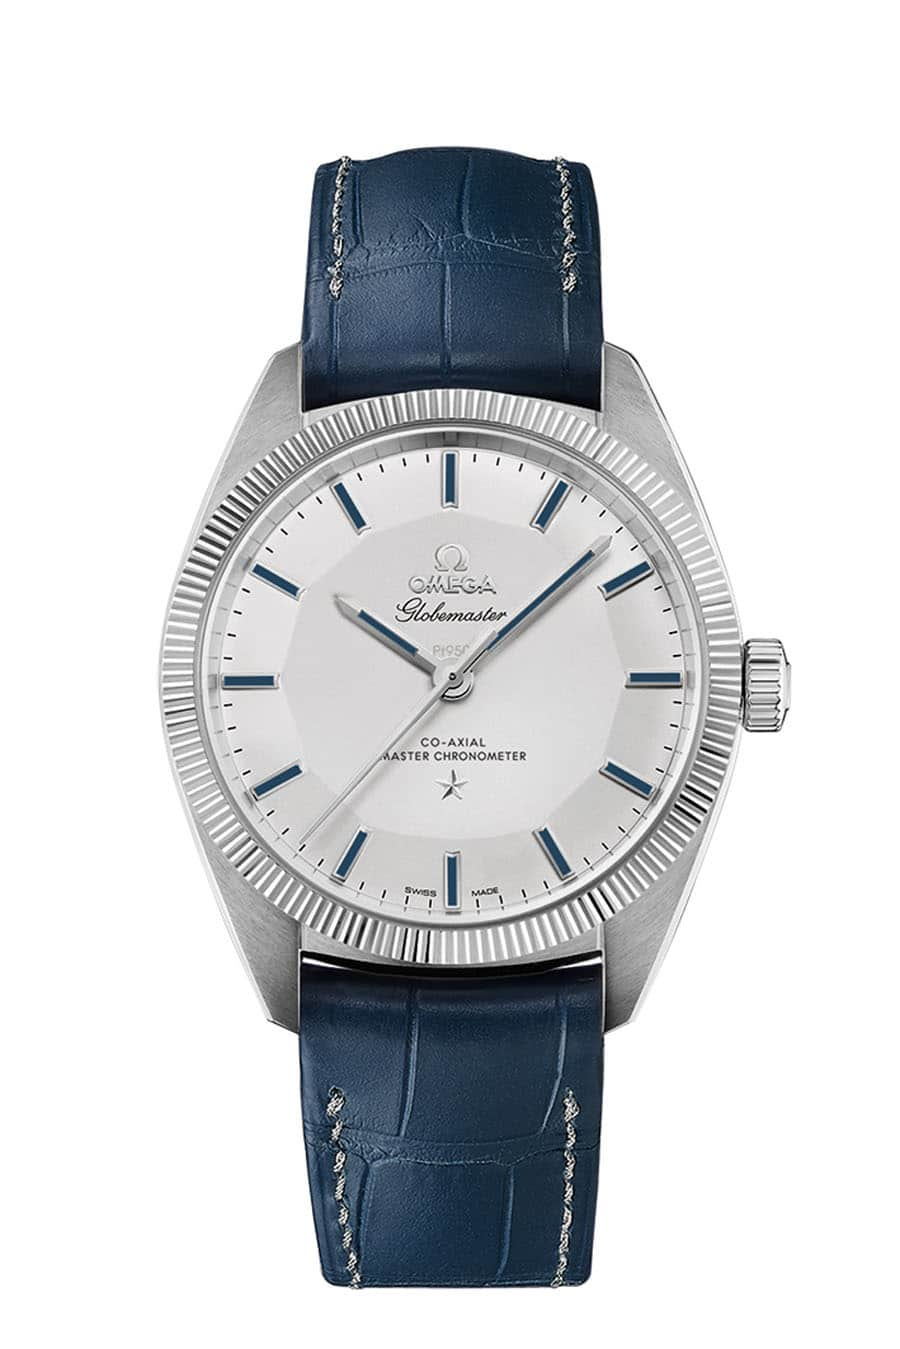 Omega: Globemaster Constellation Co-Axial Chronometer in Platin